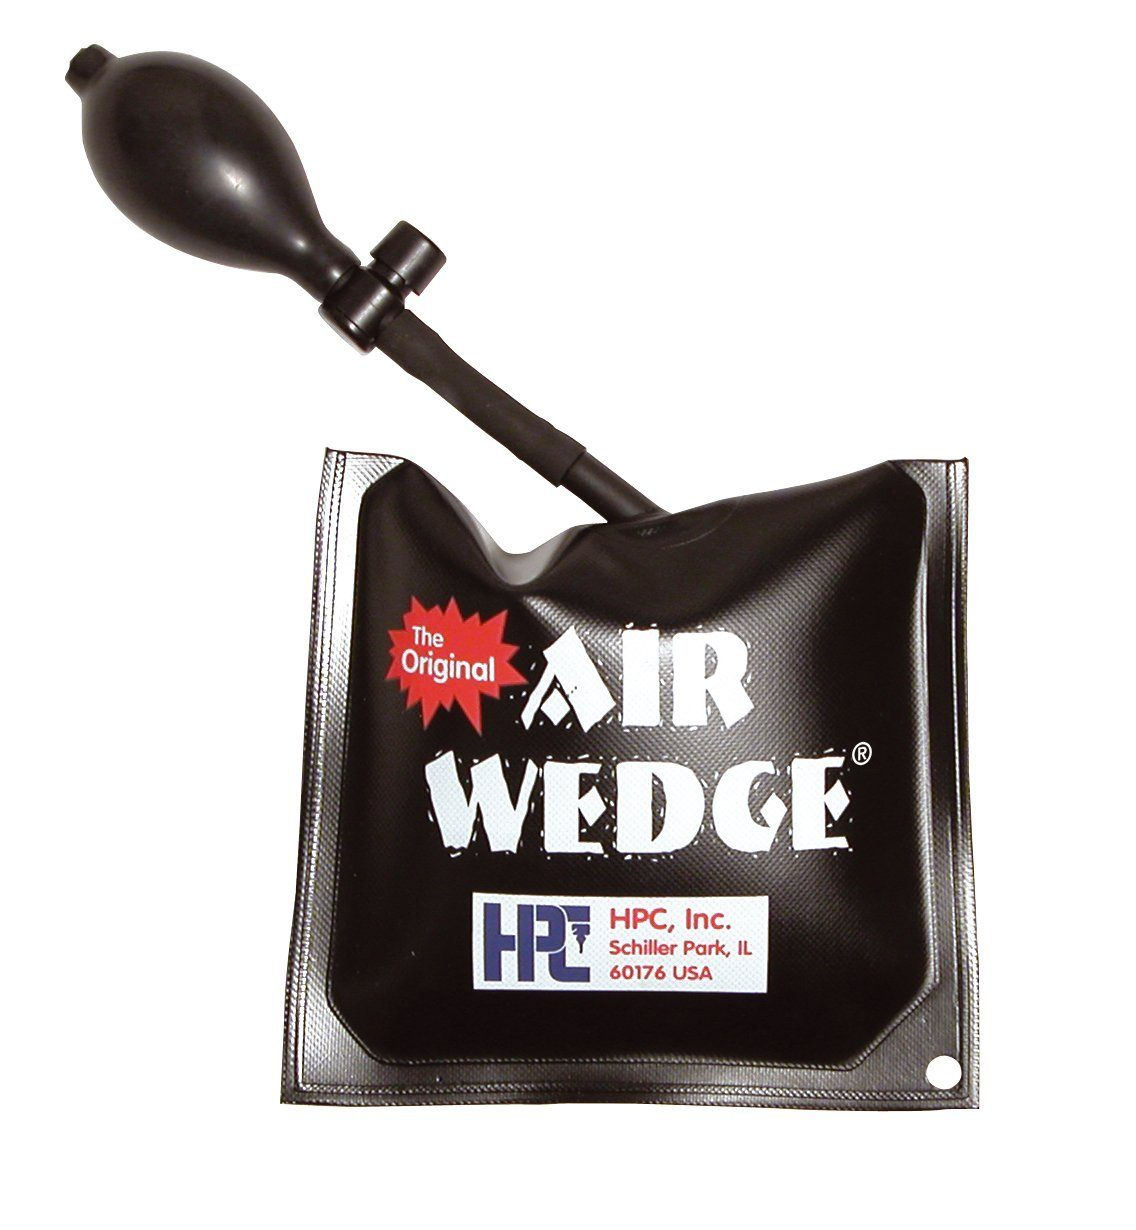 HPC AW 99 Universal Air Wedge HPC